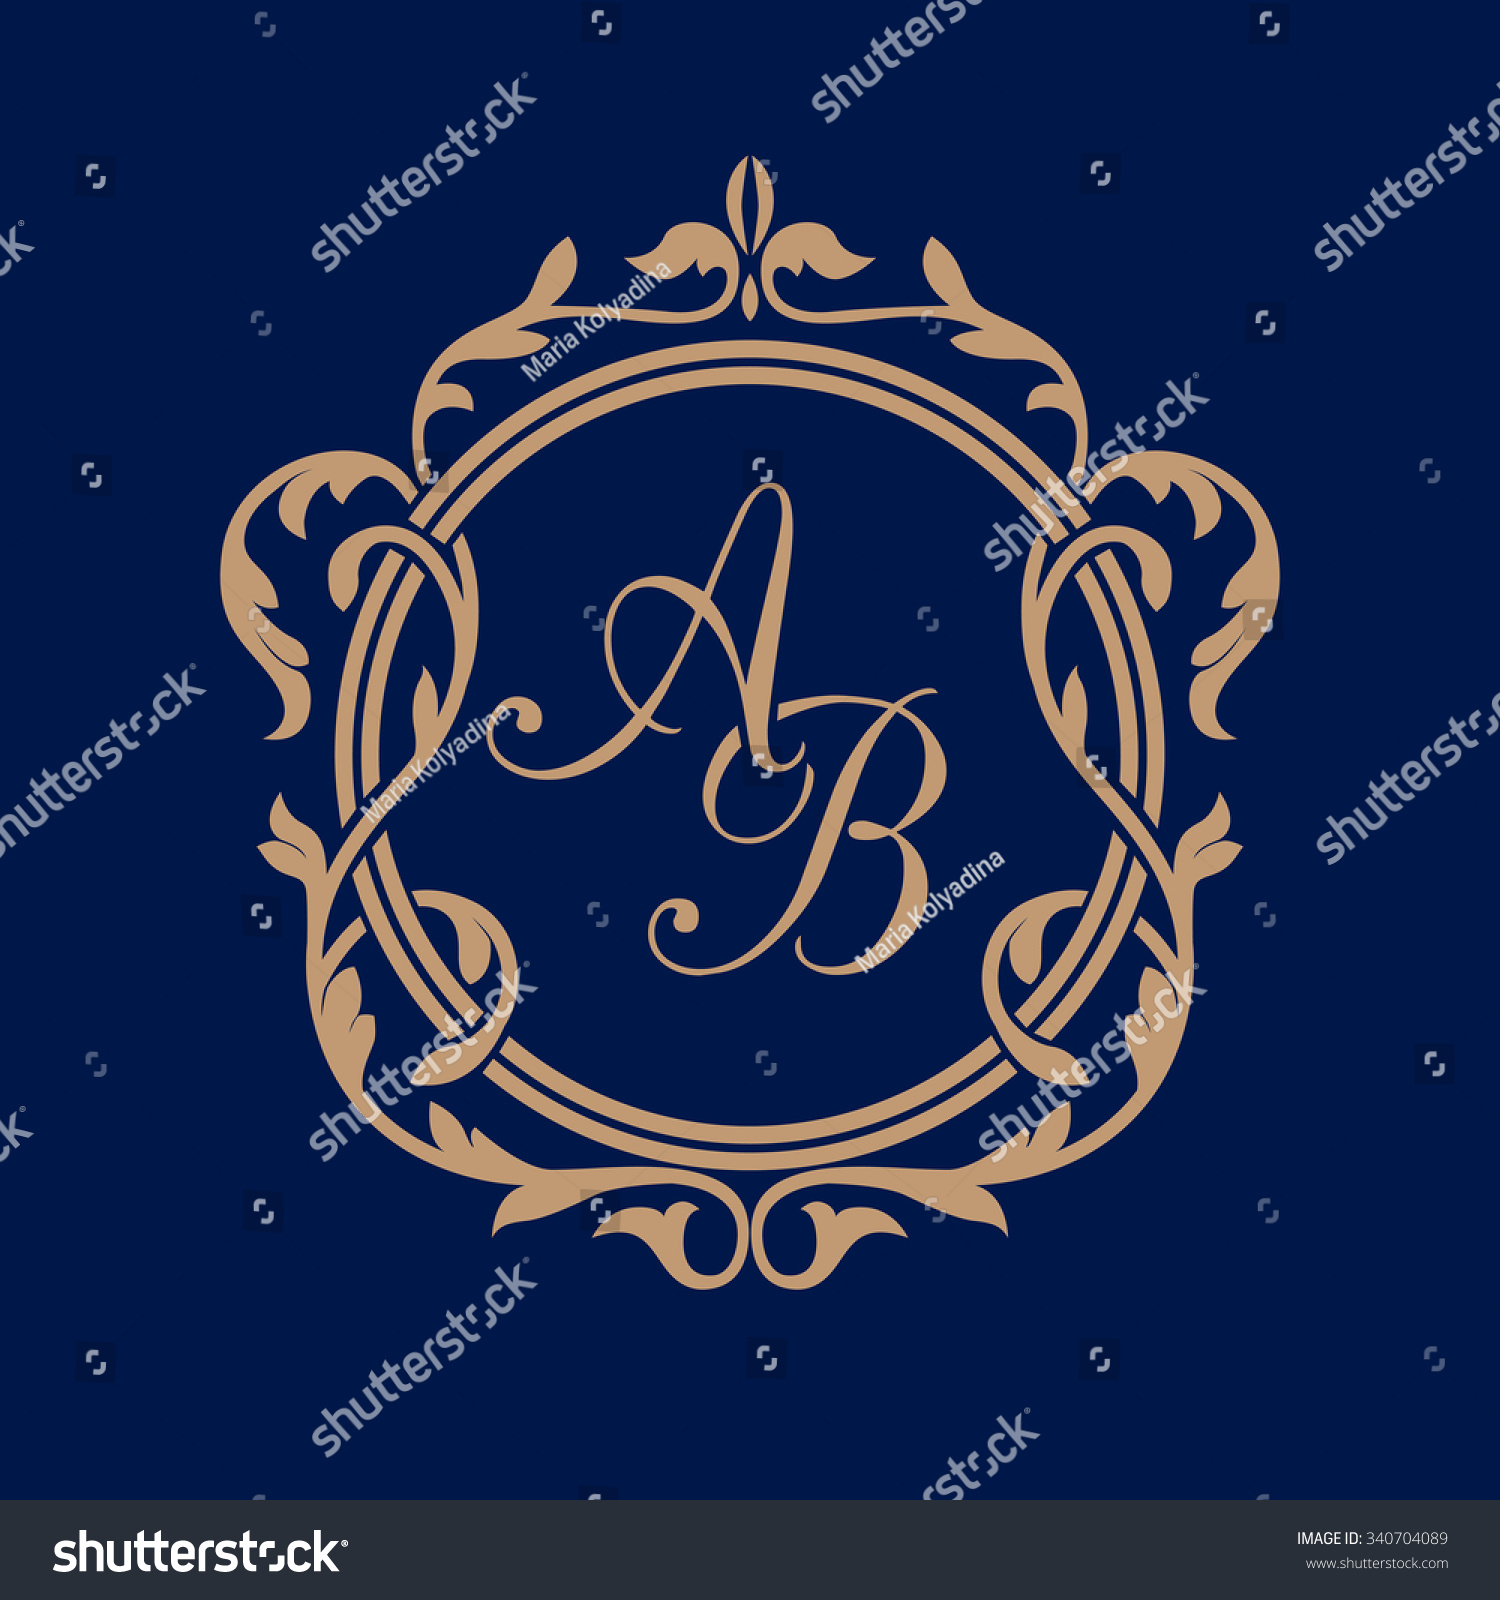 elegant floral monogram design template for one or two letters wedding monogram calligraphic elegant